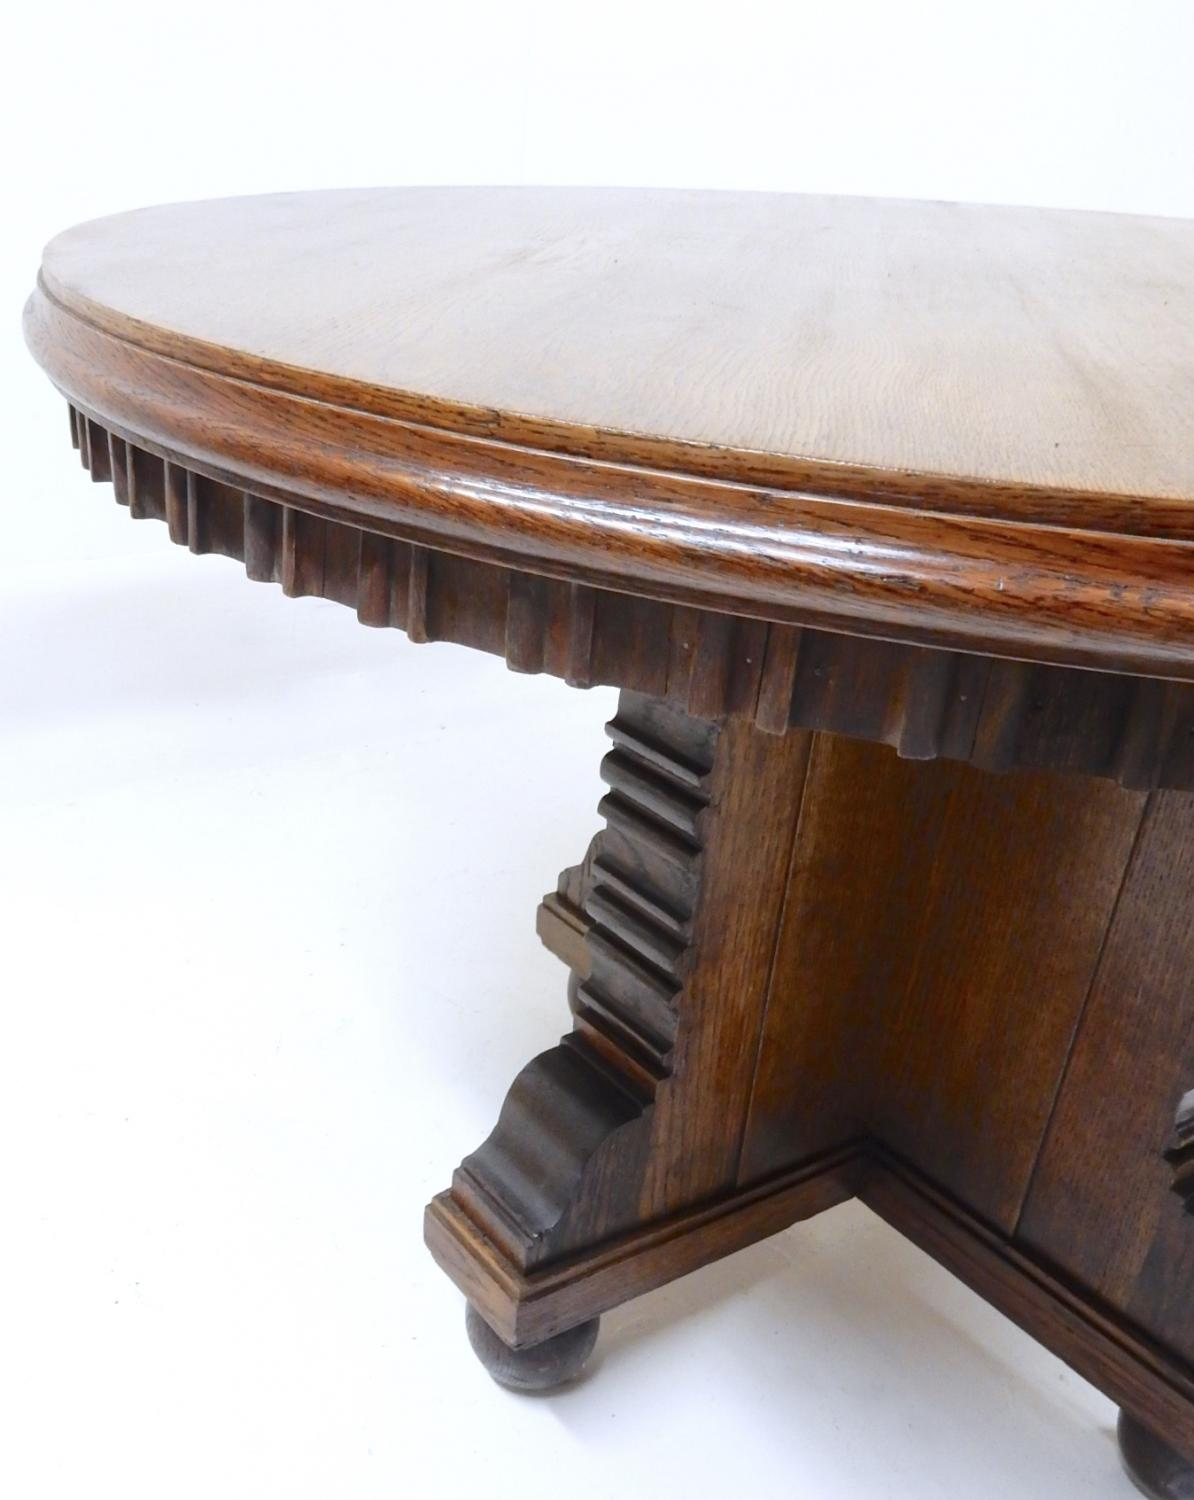 100 Edwardian Coffee Table Antique Oval Side  : edwardian oak table10339pic4size3 from 45.32.79.15 size 1194 x 1500 jpeg 114kB